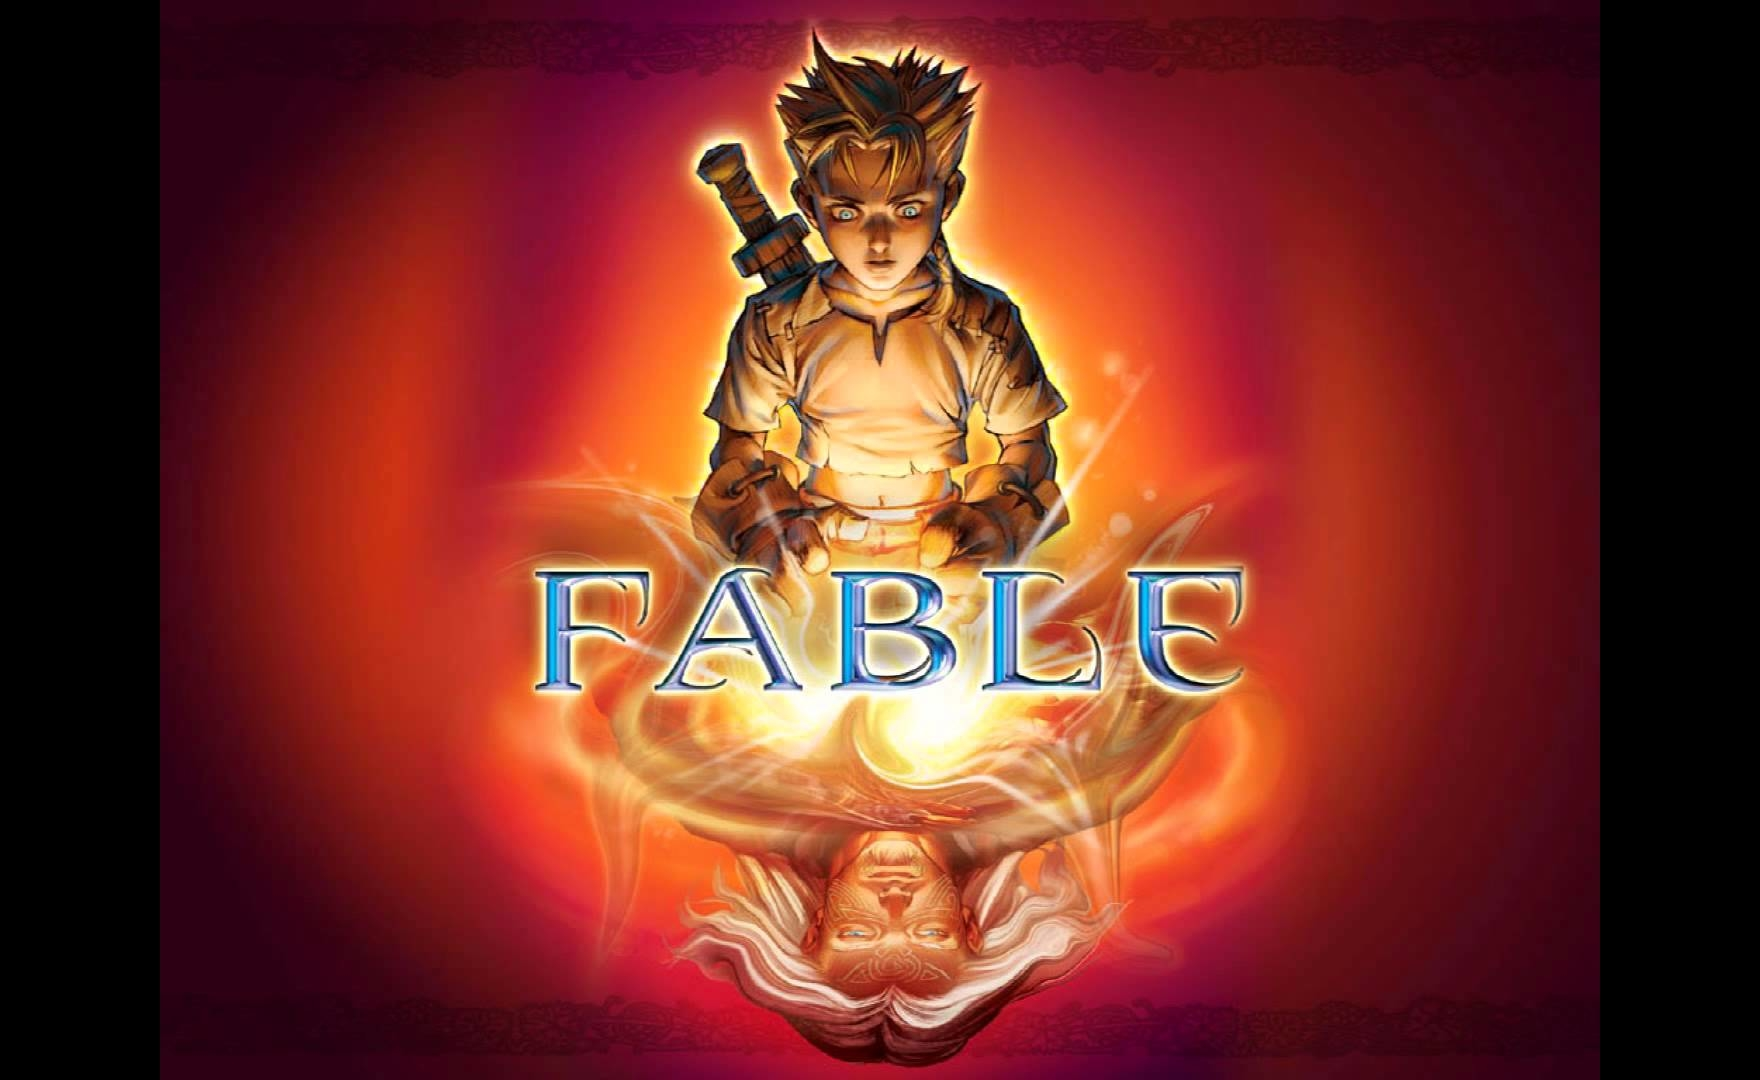 Fable: Playground Games assume, quarto capitolo in arrivo?